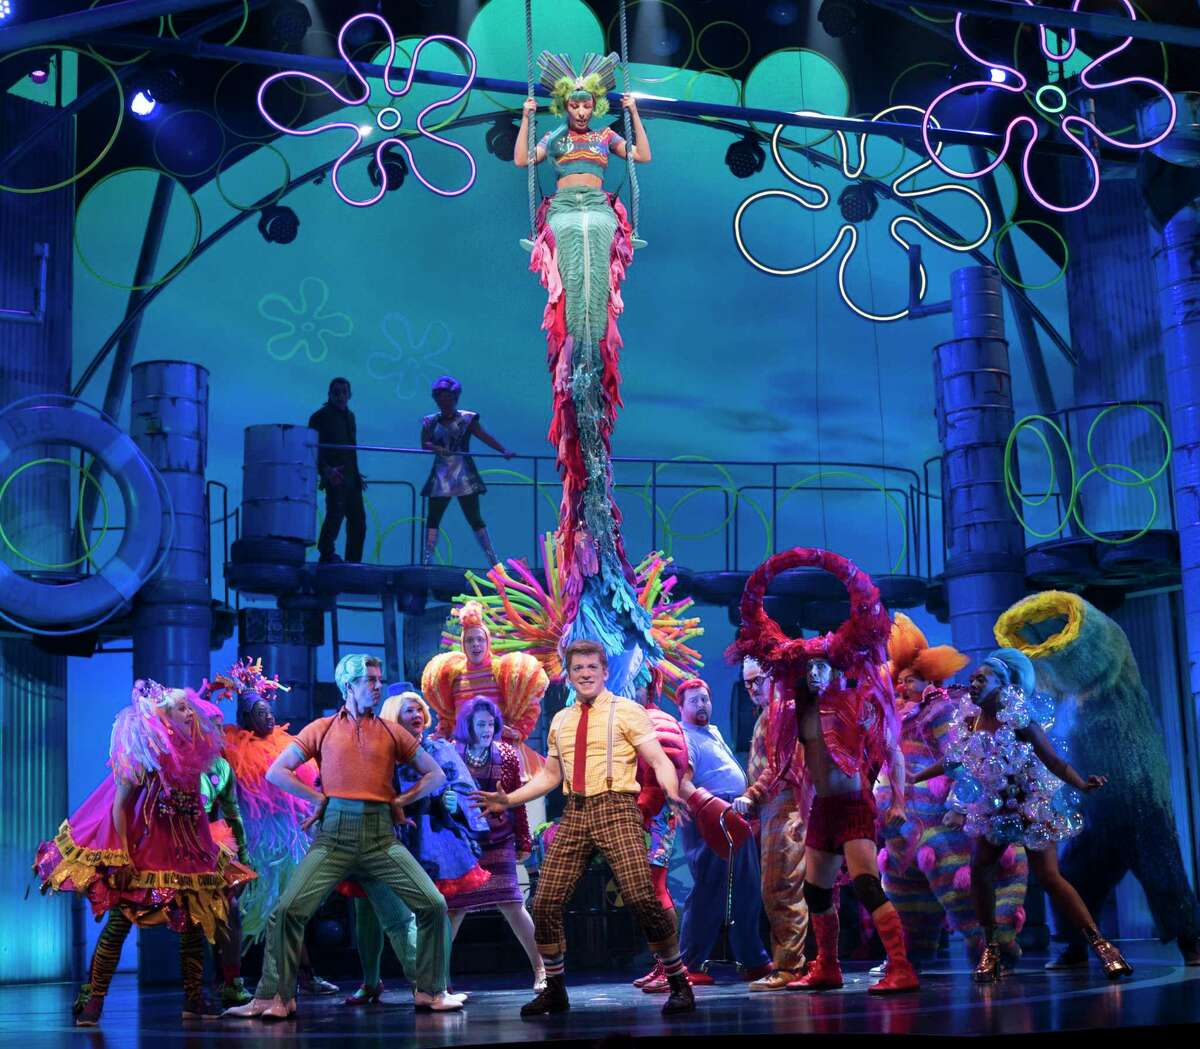 """Ethan Slater as SpongeBob in Â?""""SpongeBob SquarePants: The Broadway MusicalÂ?"""" at the Palace Theater in New York, Nov. 4, 2017. The roughly $20-million musical, based on the Nickelodeon cartoon that made an unlikely superstar out of a yellow kitchen sponge, is said to explode off the stage. (Sara Krulwich/The New York Times)"""